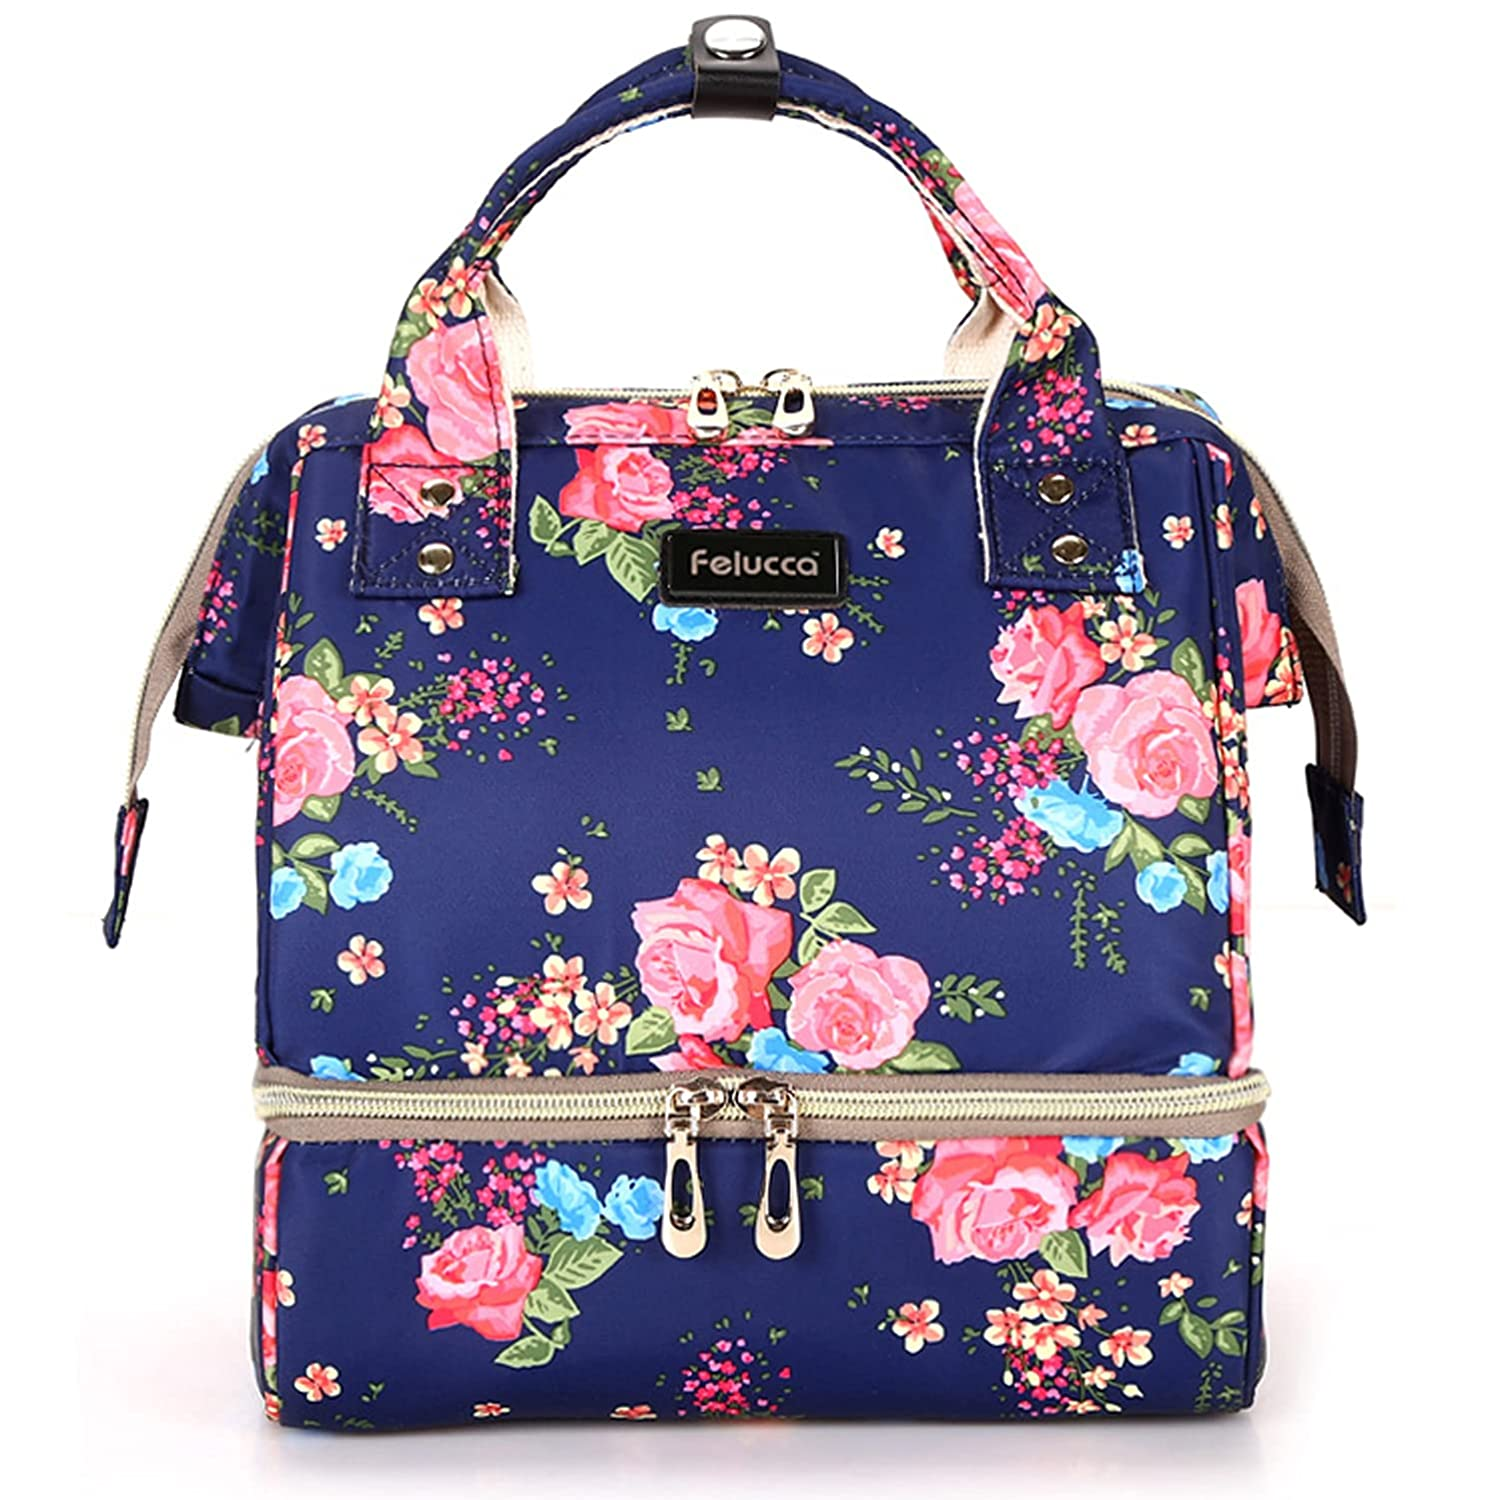 Felucca Diaper Tote Bag Backpack Multifunctional Waterproof Stylish Durable Travel Nappy Bags with Built-in USB Charging Port, BlueFloral